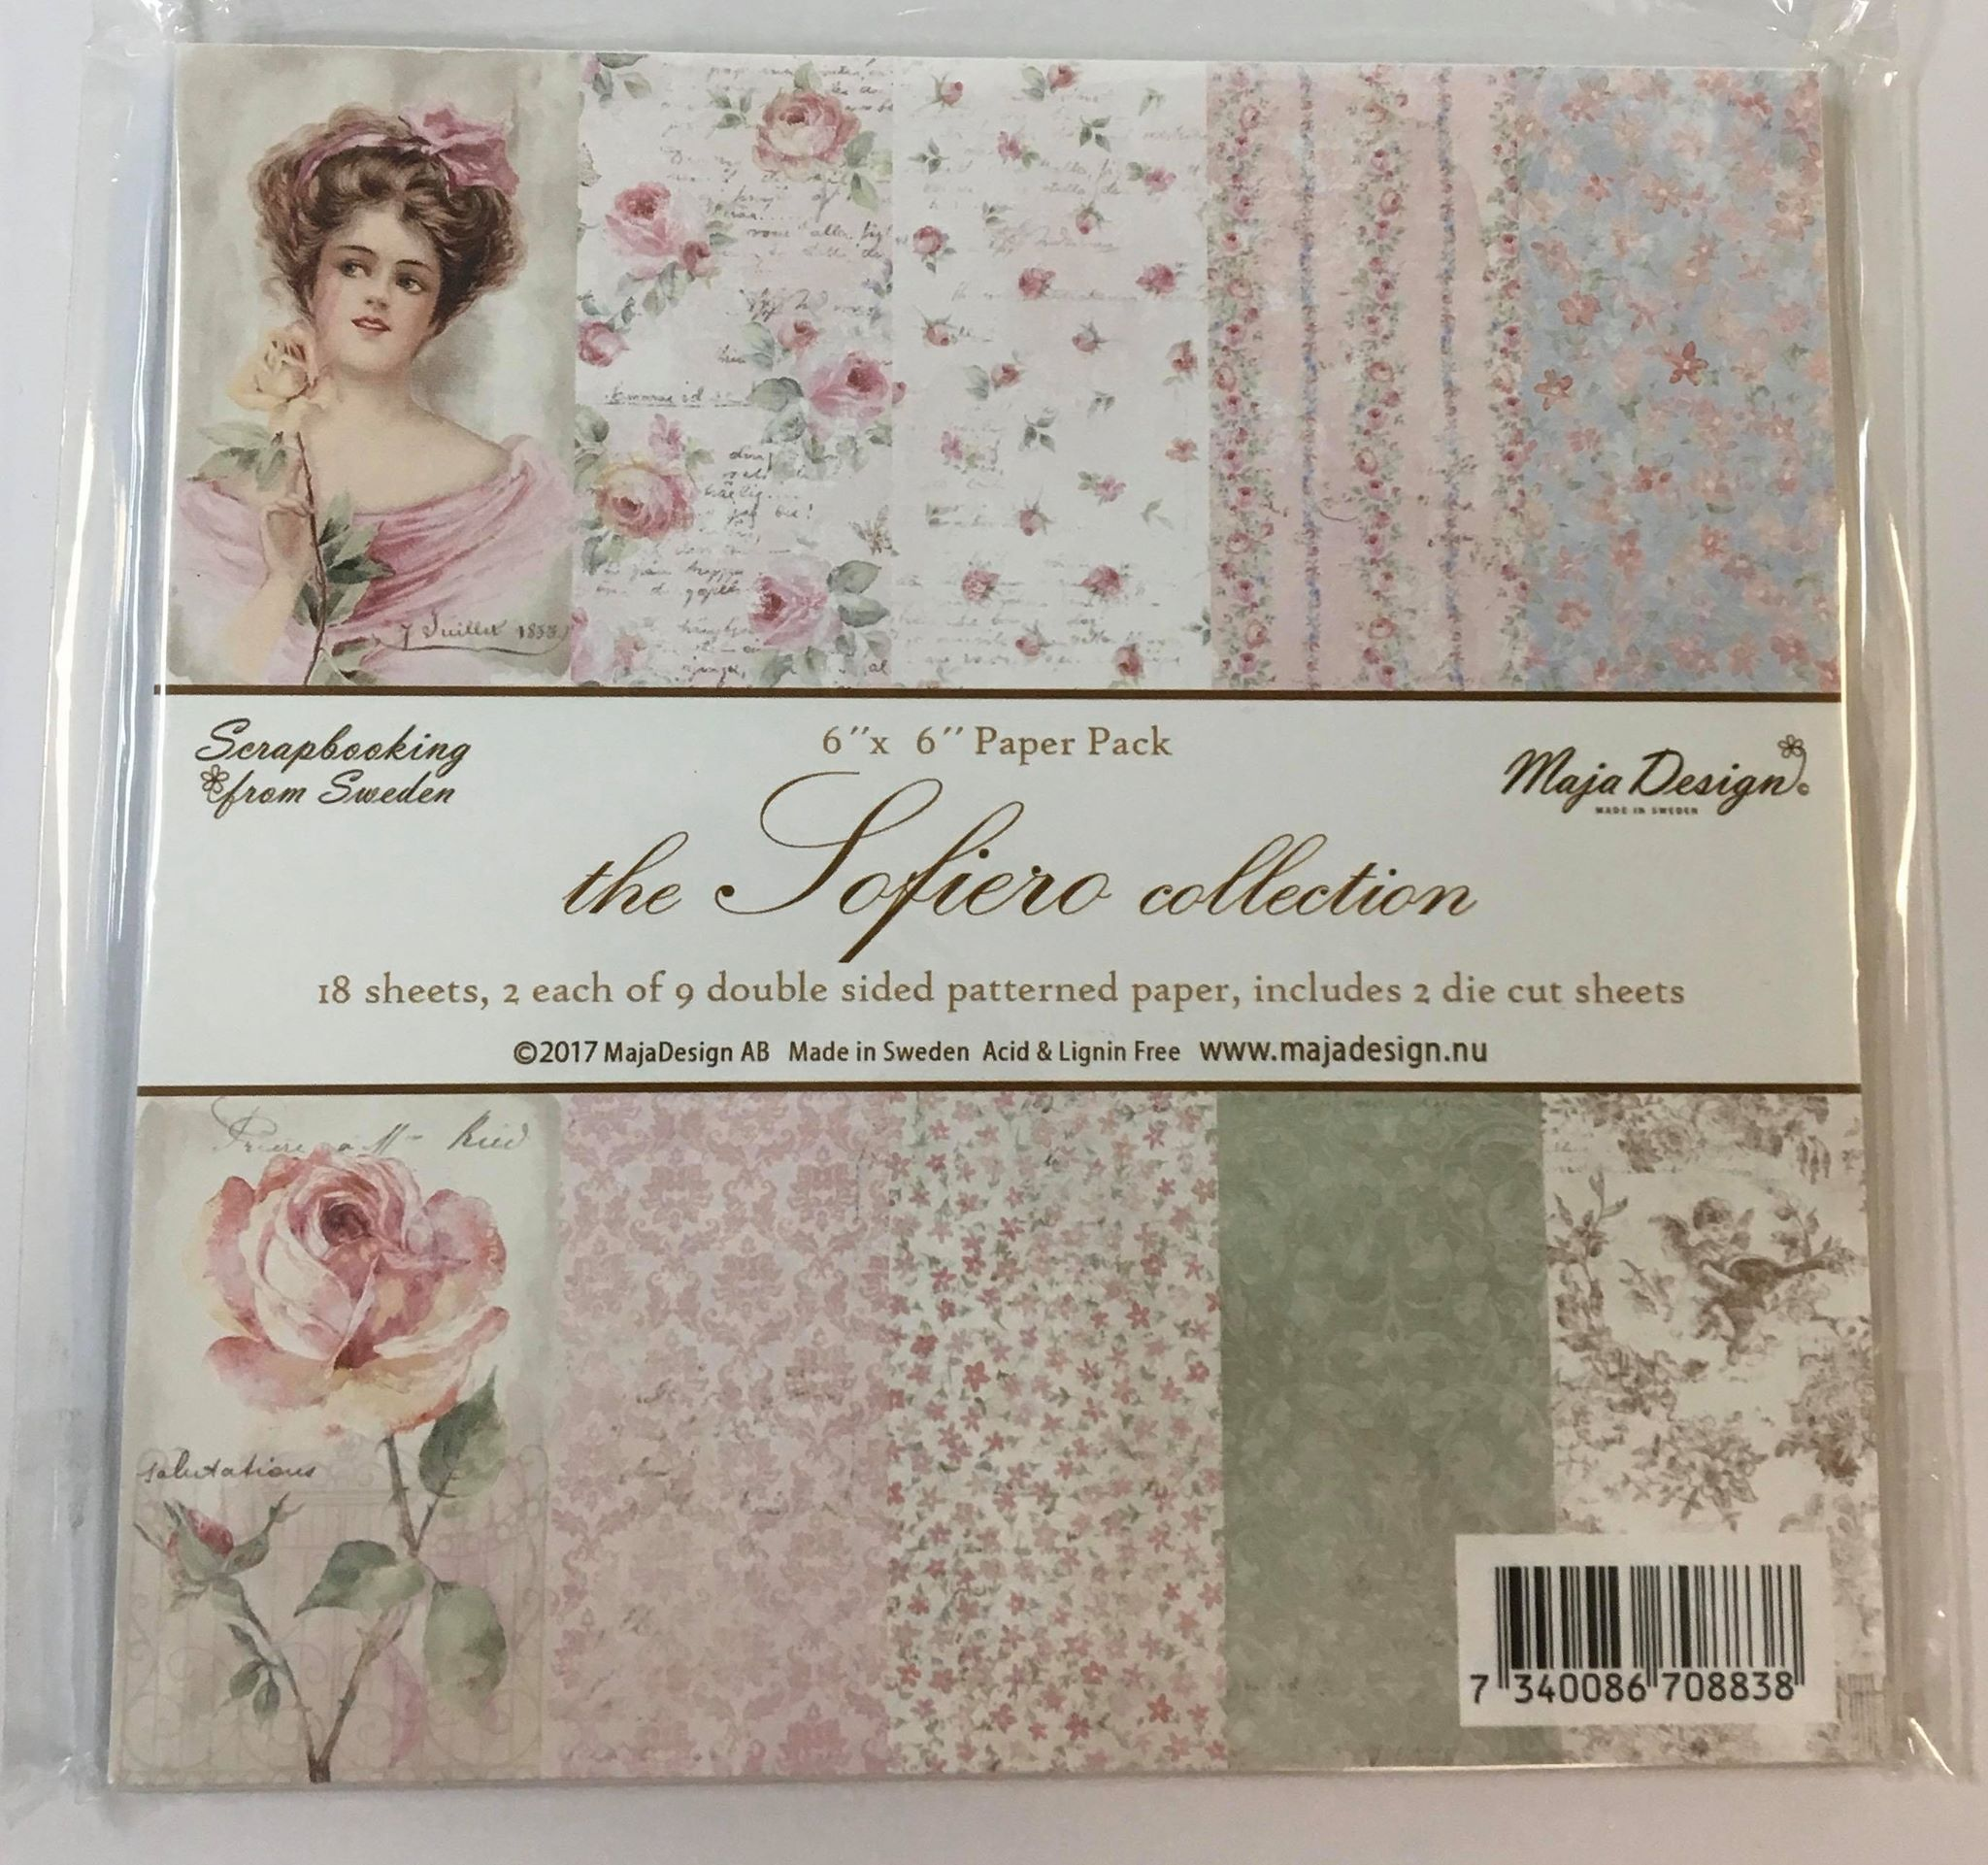 Maja Design - The Sofiero Collection 6x6 Paper Pack